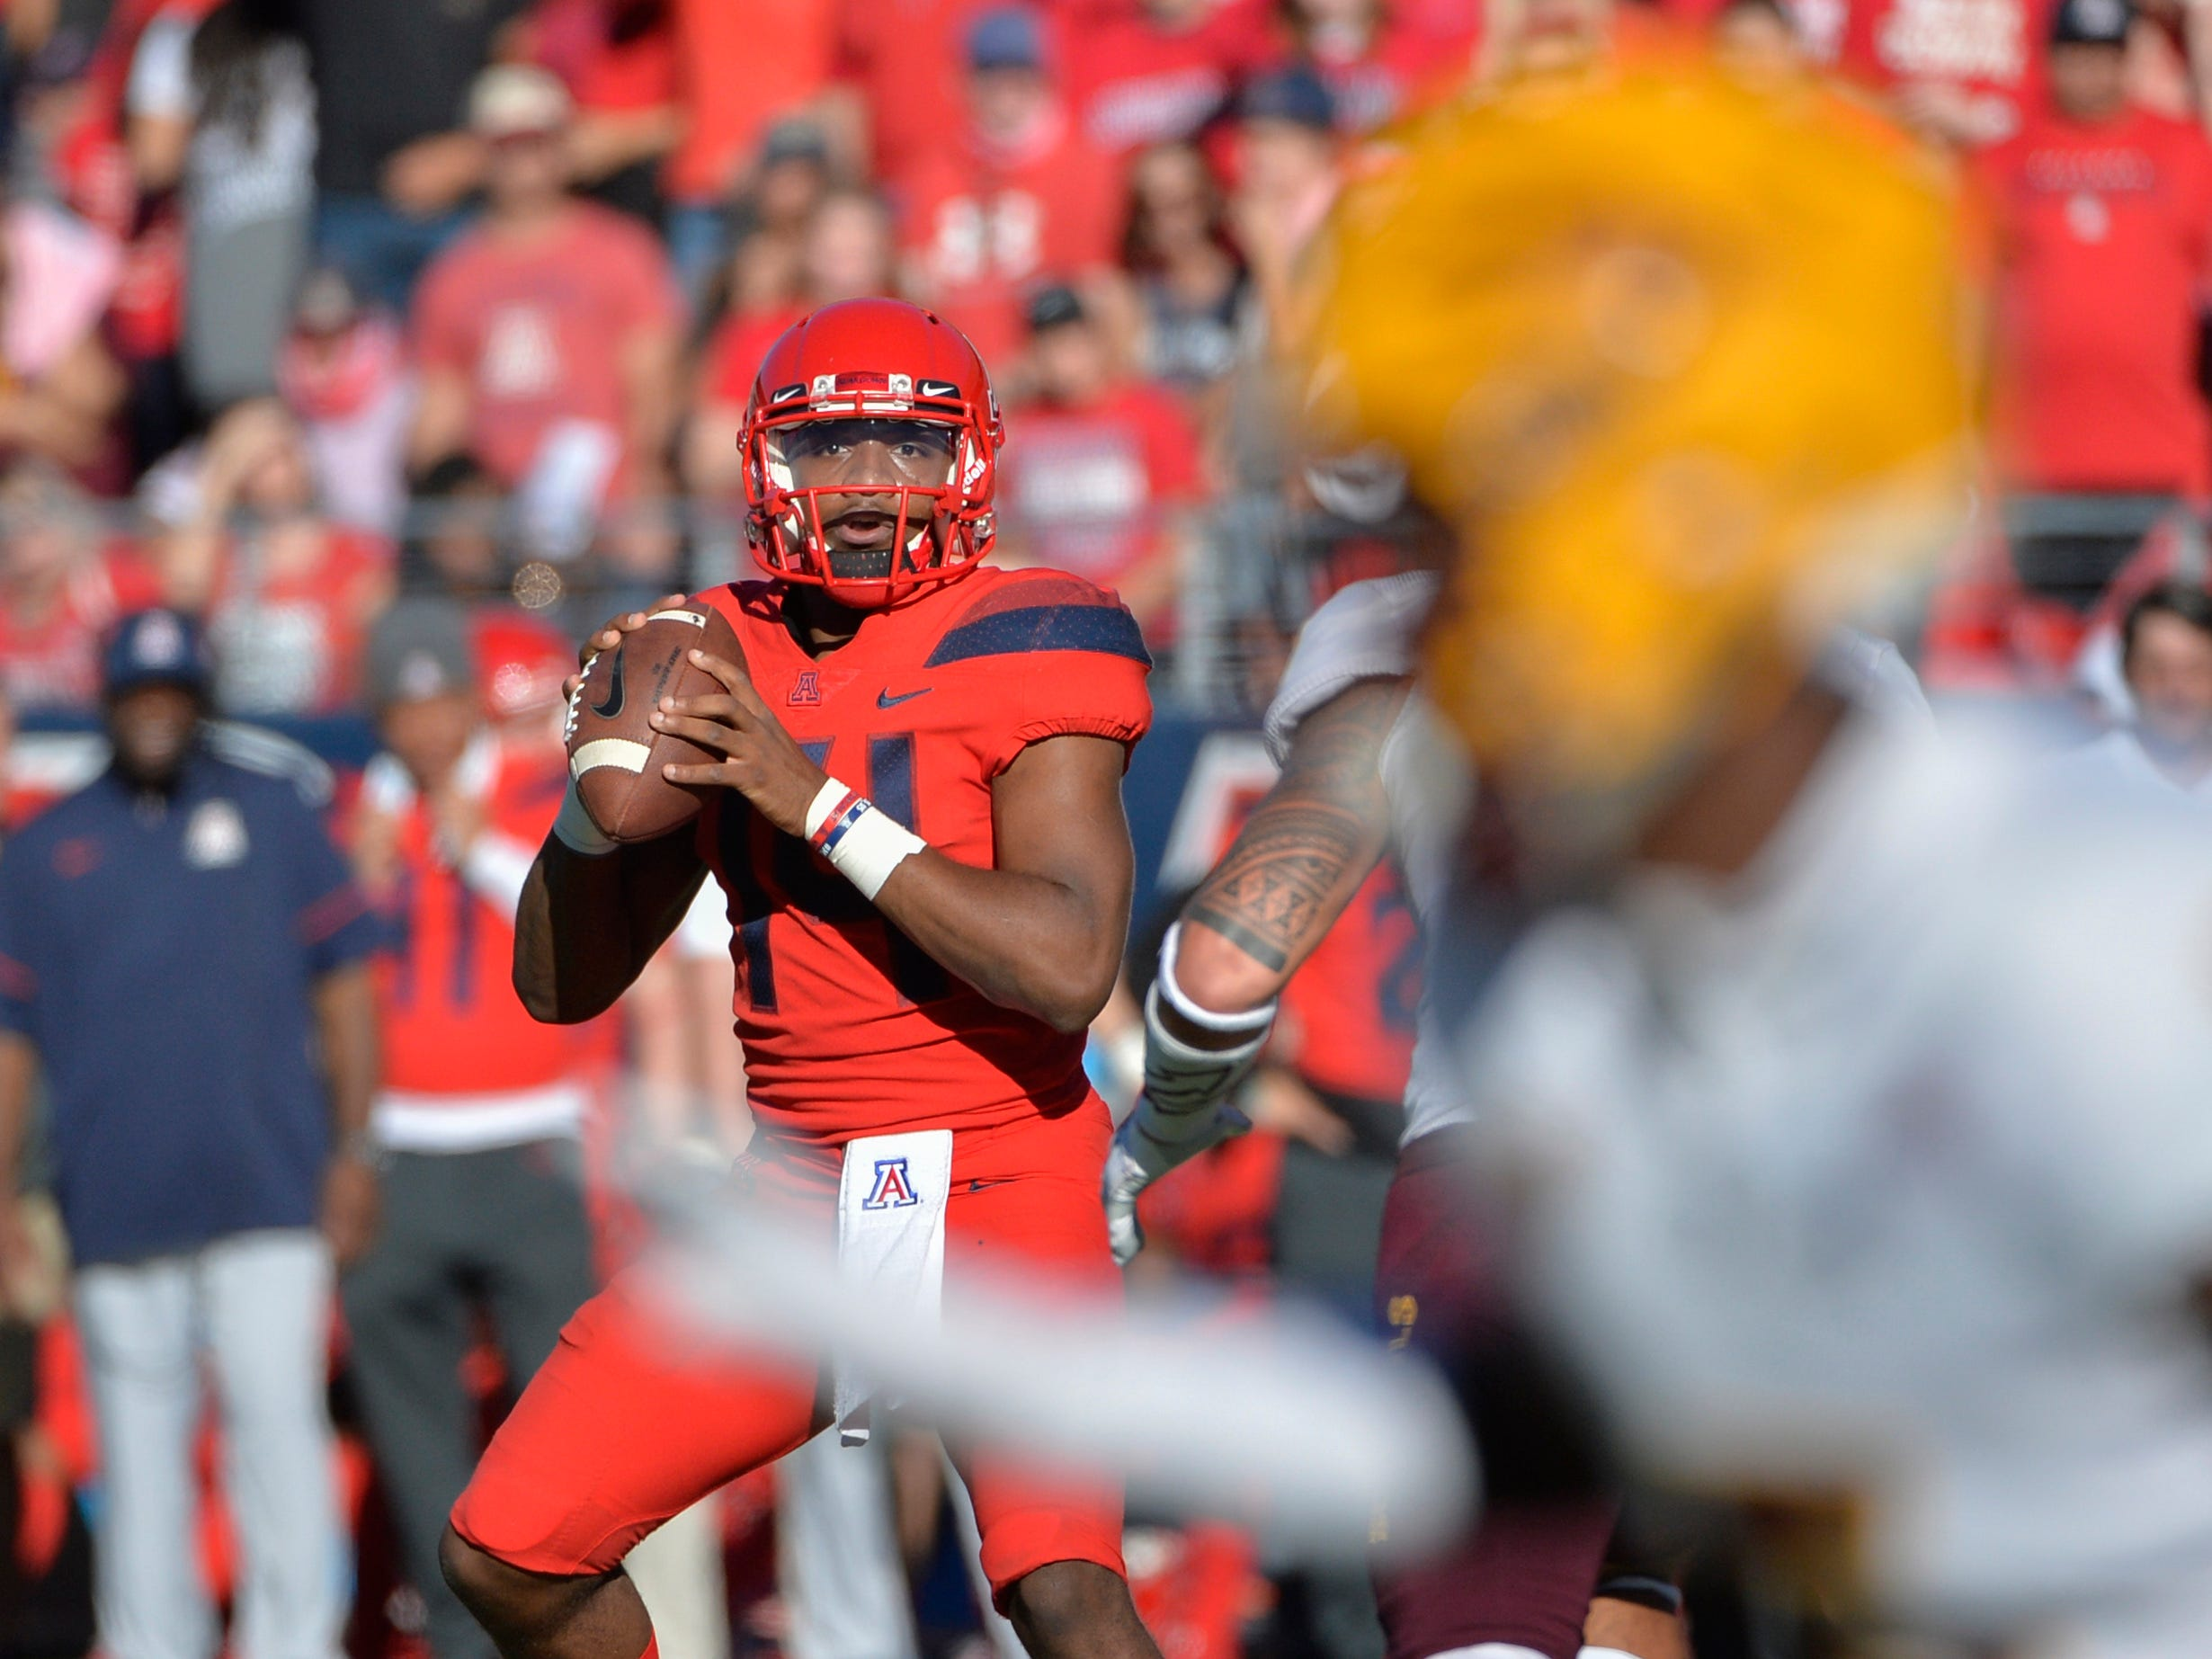 Nov 24, 2018; Tucson, AZ, USA; Arizona Wildcats quarterback Khalil Tate (14) drops back to pass the ball against the Arizona State Sun Devils during the first half of the Territorial Cup at Arizona Stadium. Mandatory Credit: Casey Sapio-USA TODAY Sports